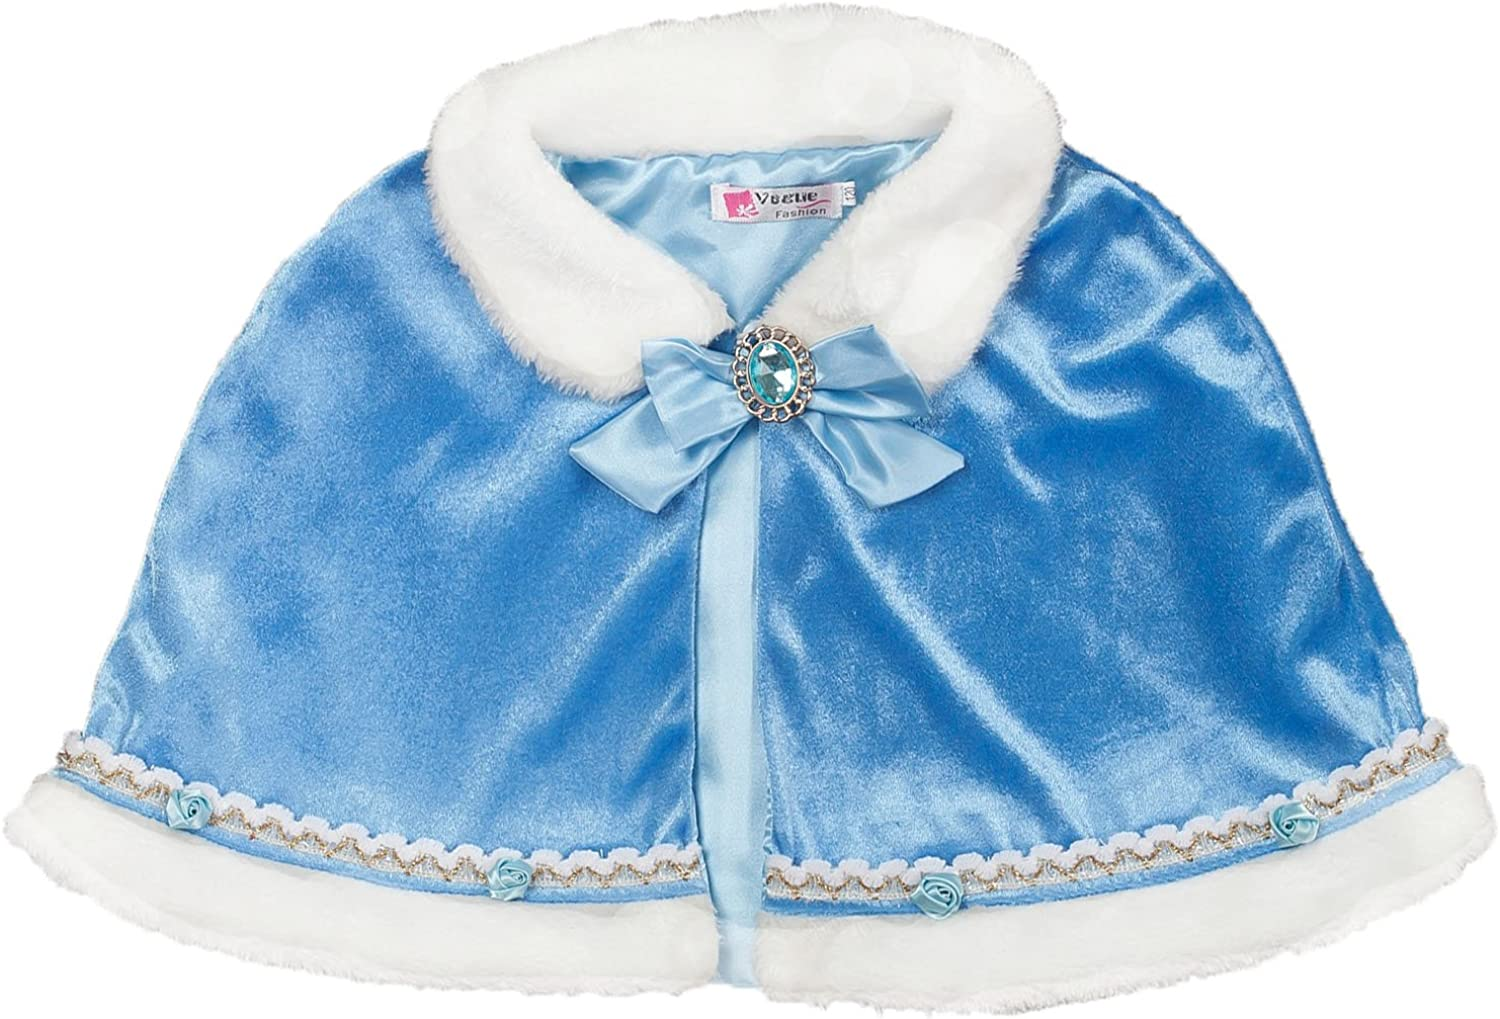 Shiny Toddler Little//Big Girls Velvet Wraps Cape Kids Bolero Wedding Princess Cloak Dress Coat